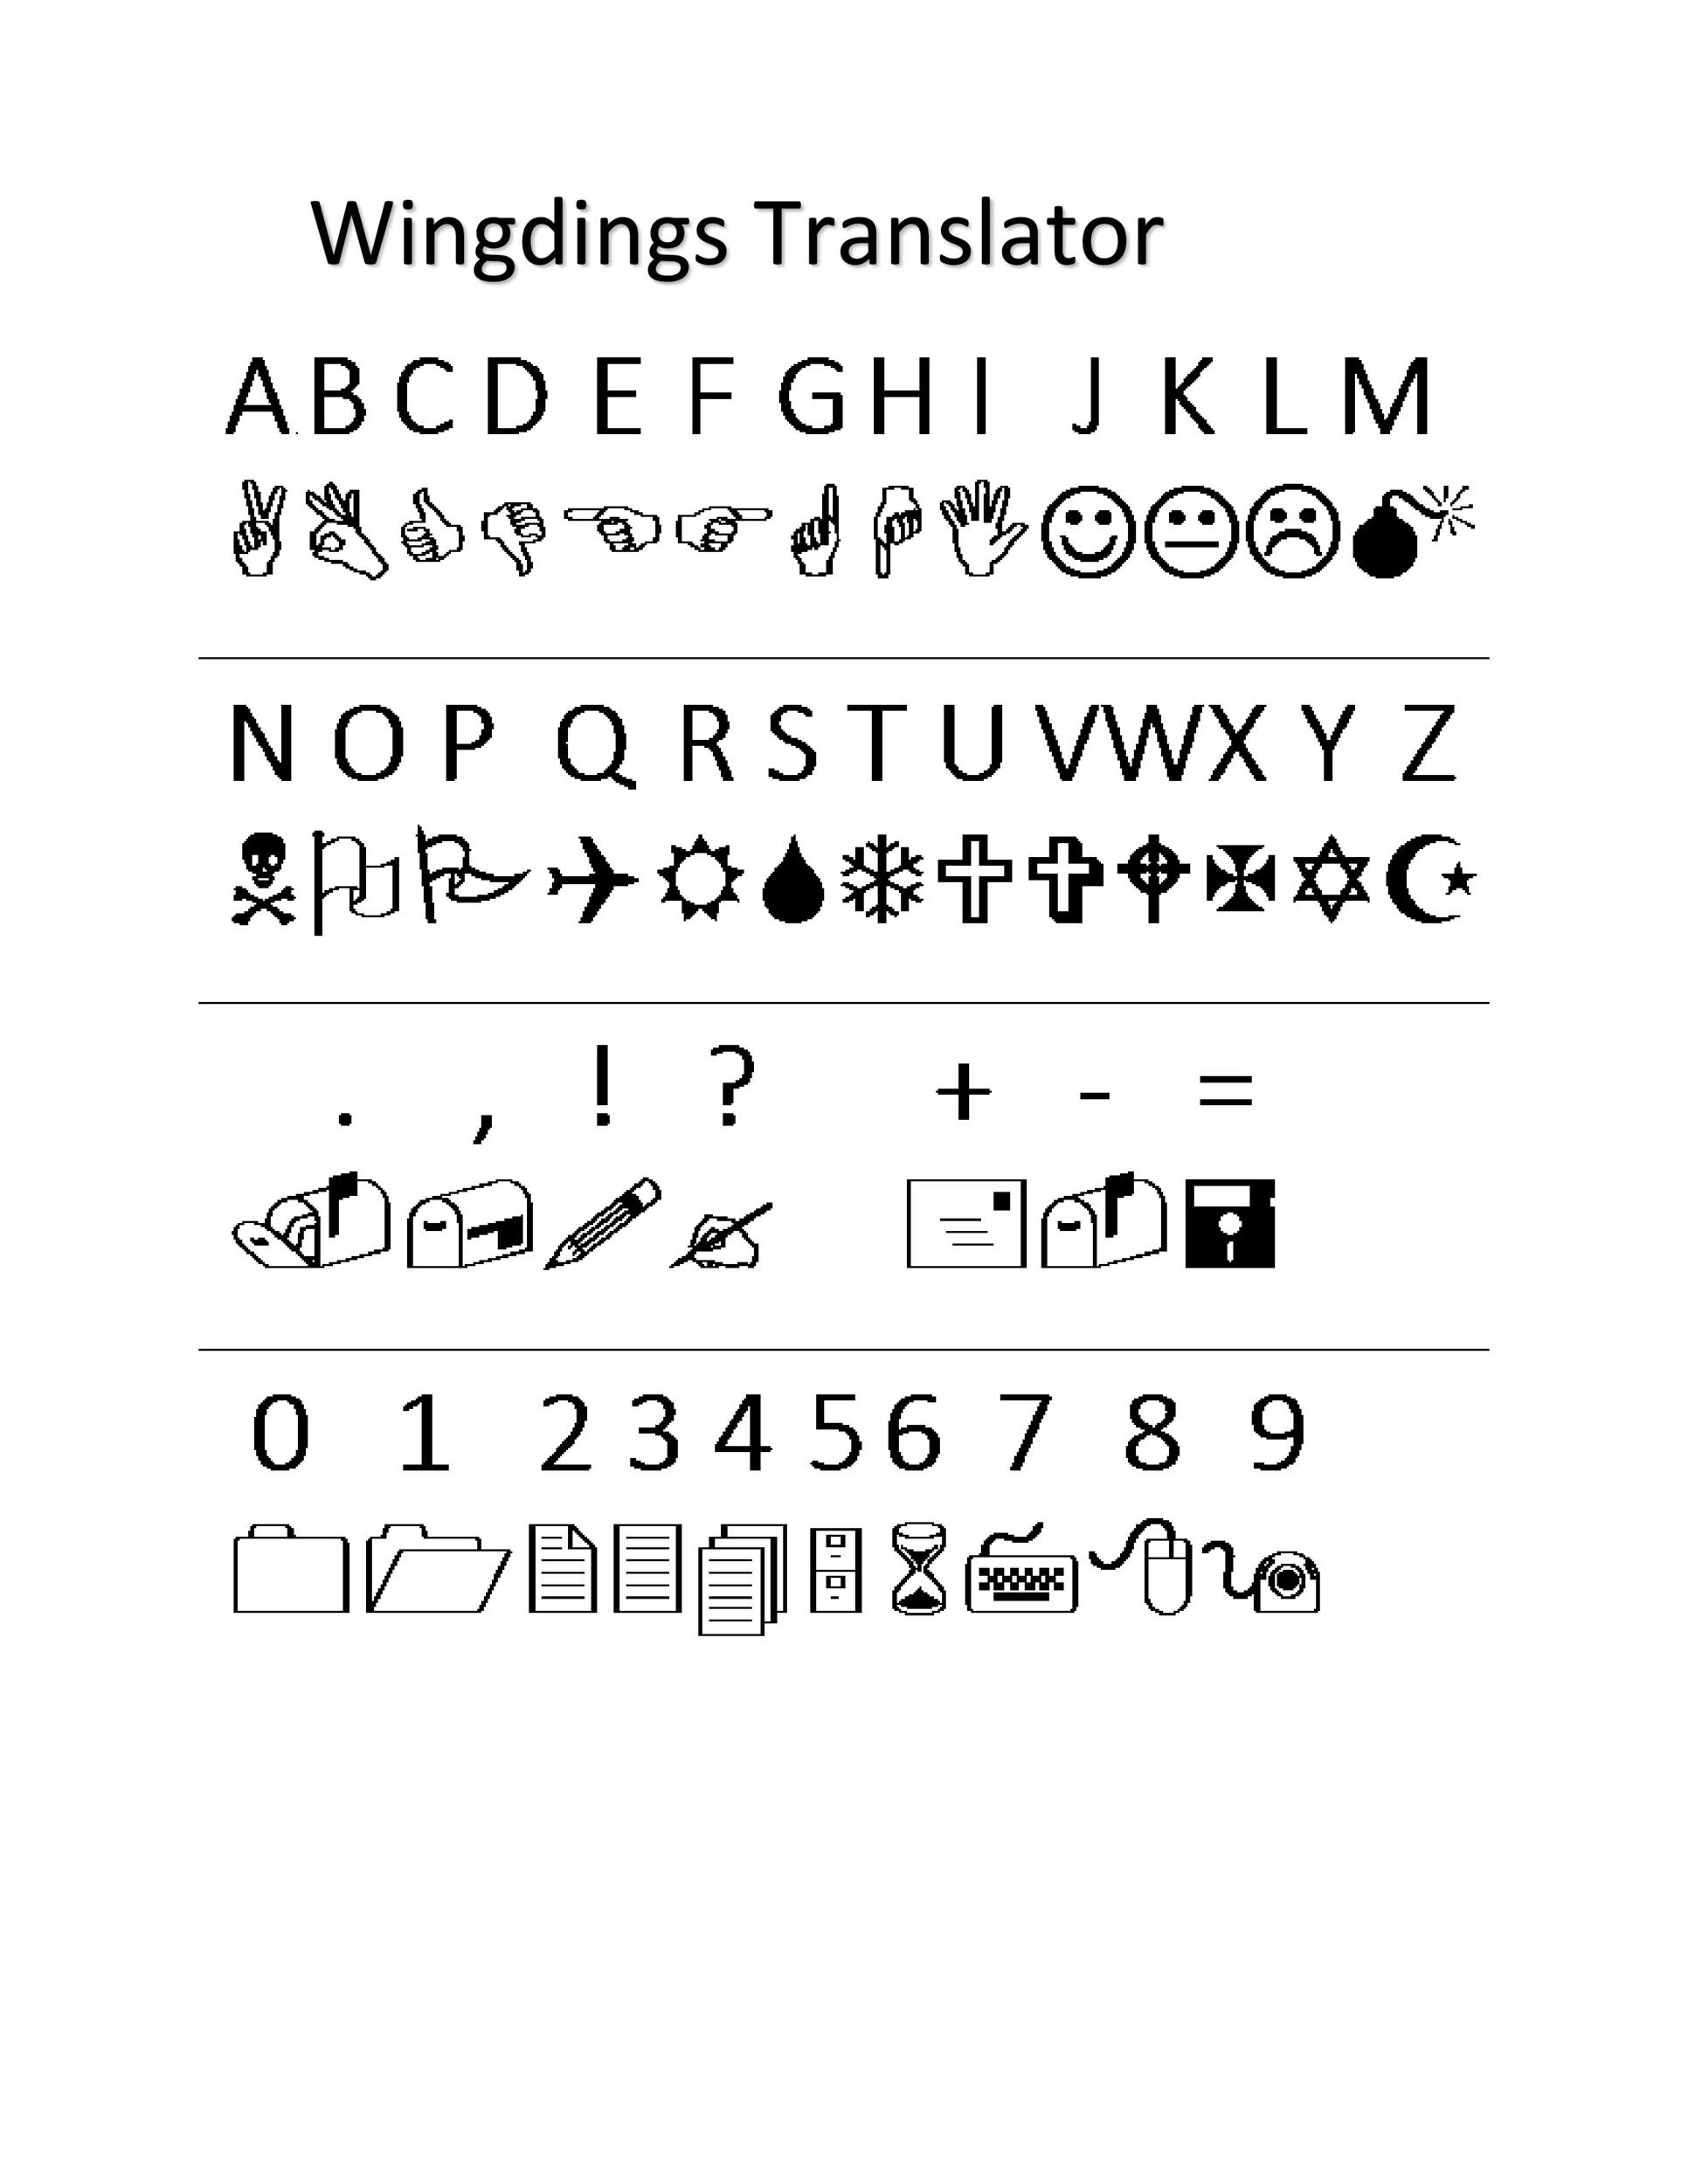 Free wingdings translator template 20